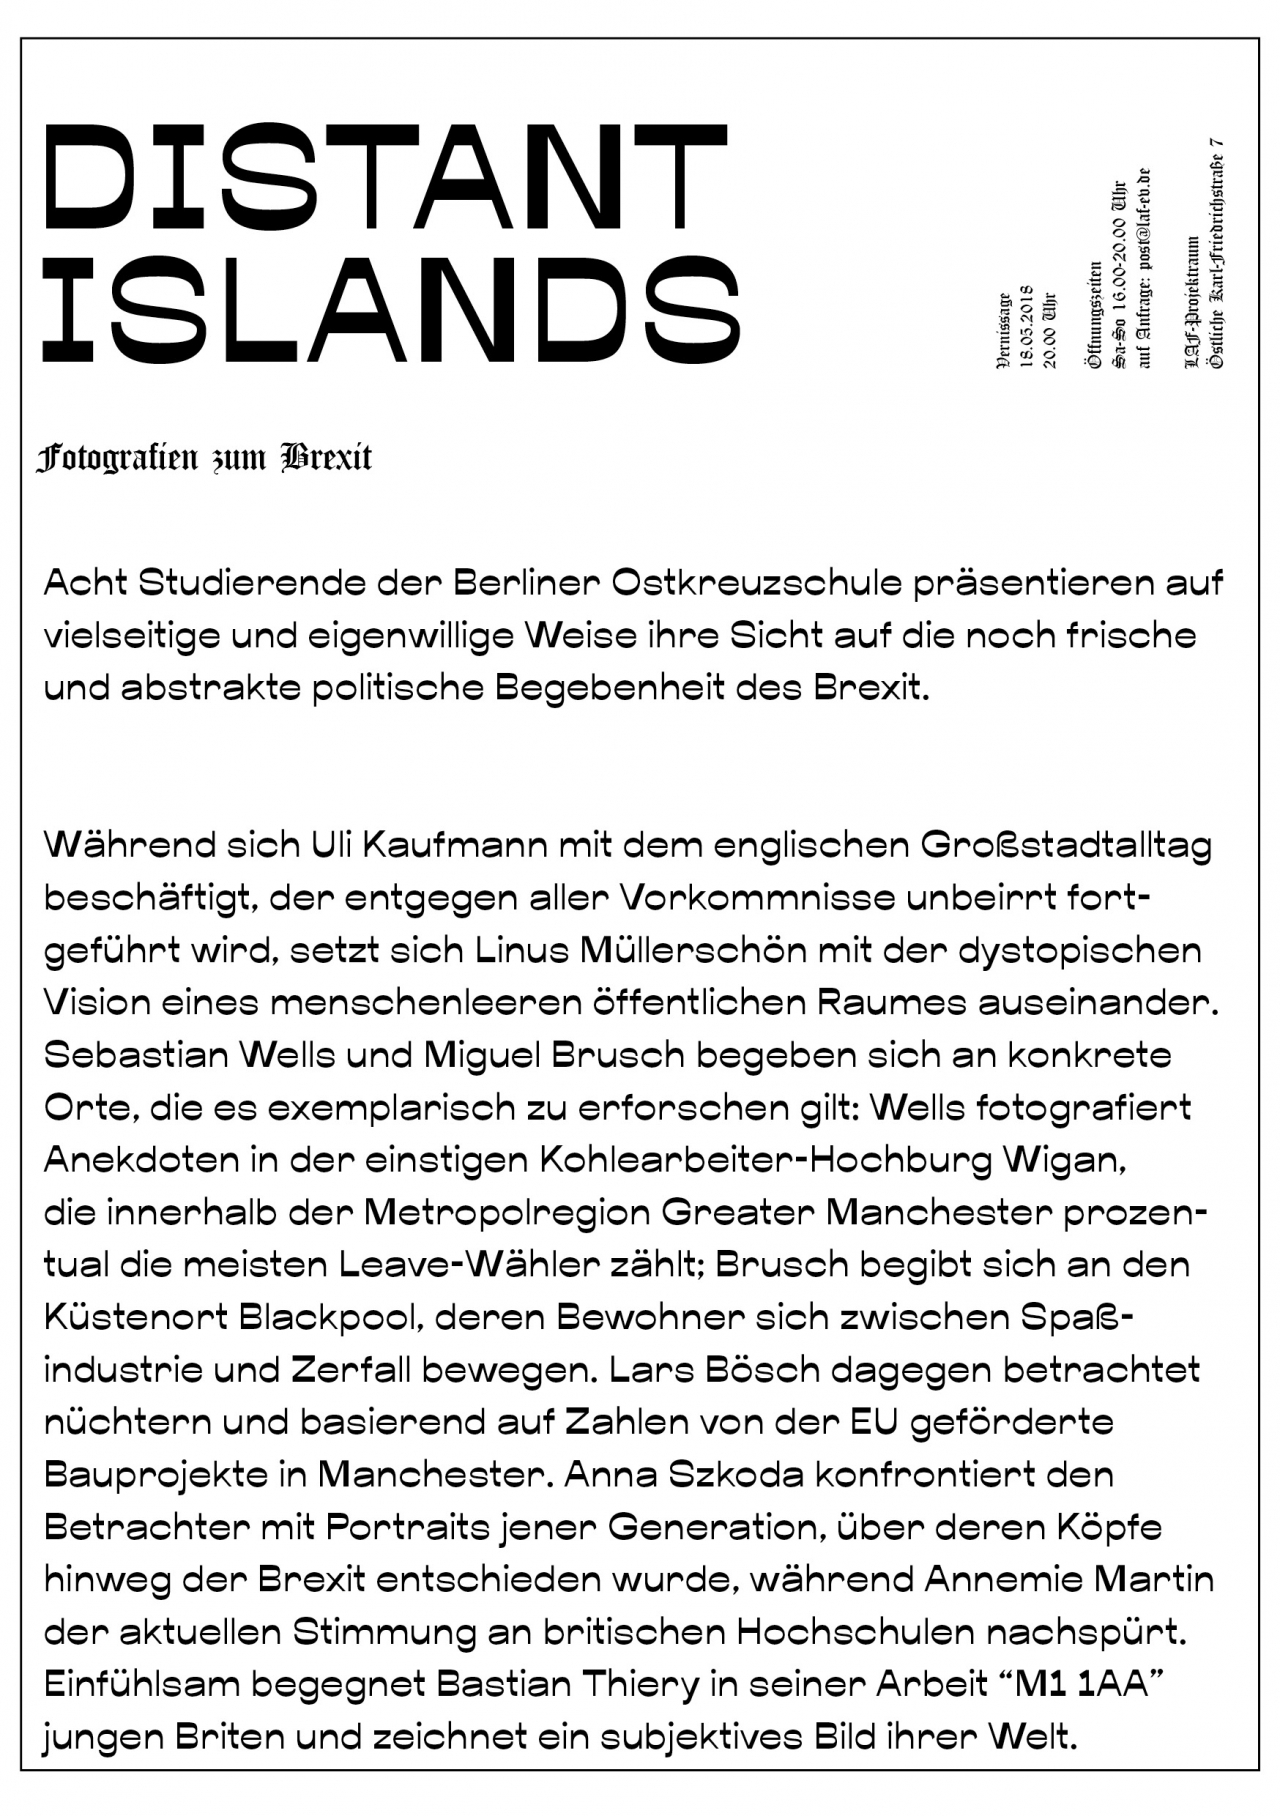 LAF Distant Islands, Fotografien zum Brexit